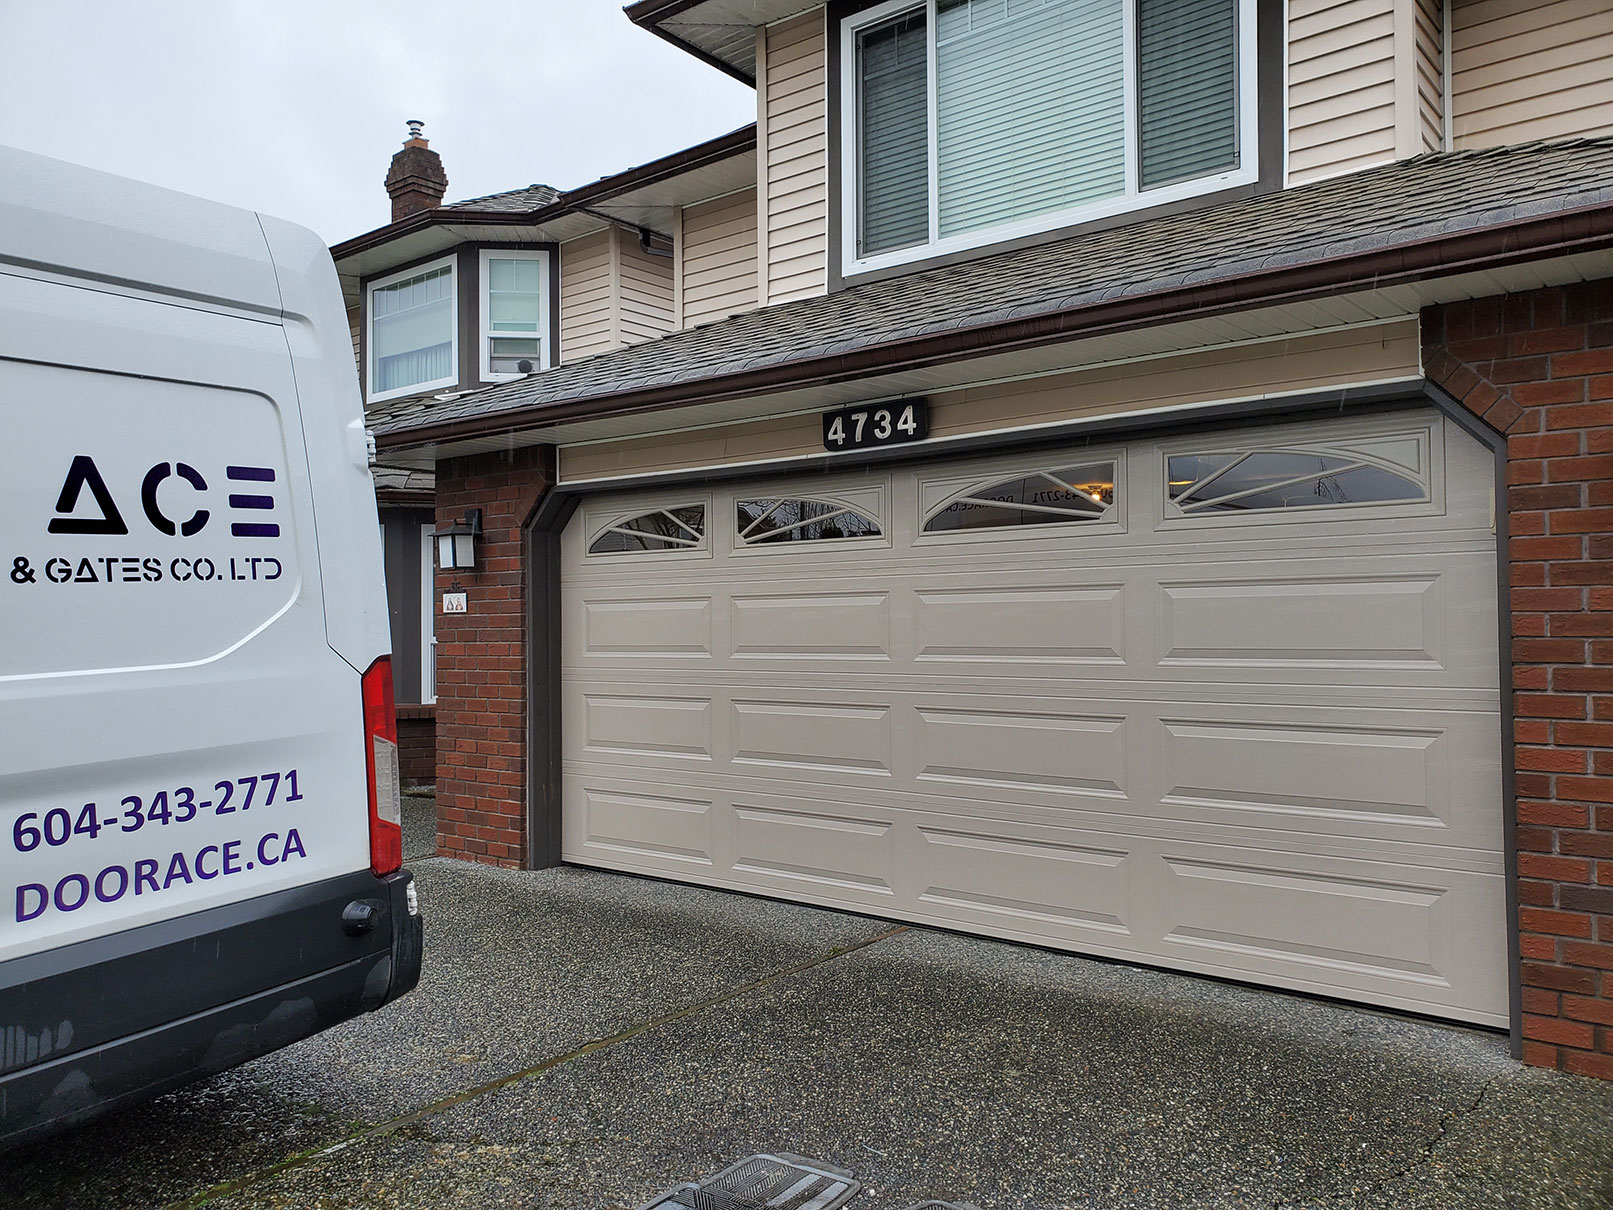 2. Doorace Residential Garage Door Repair After